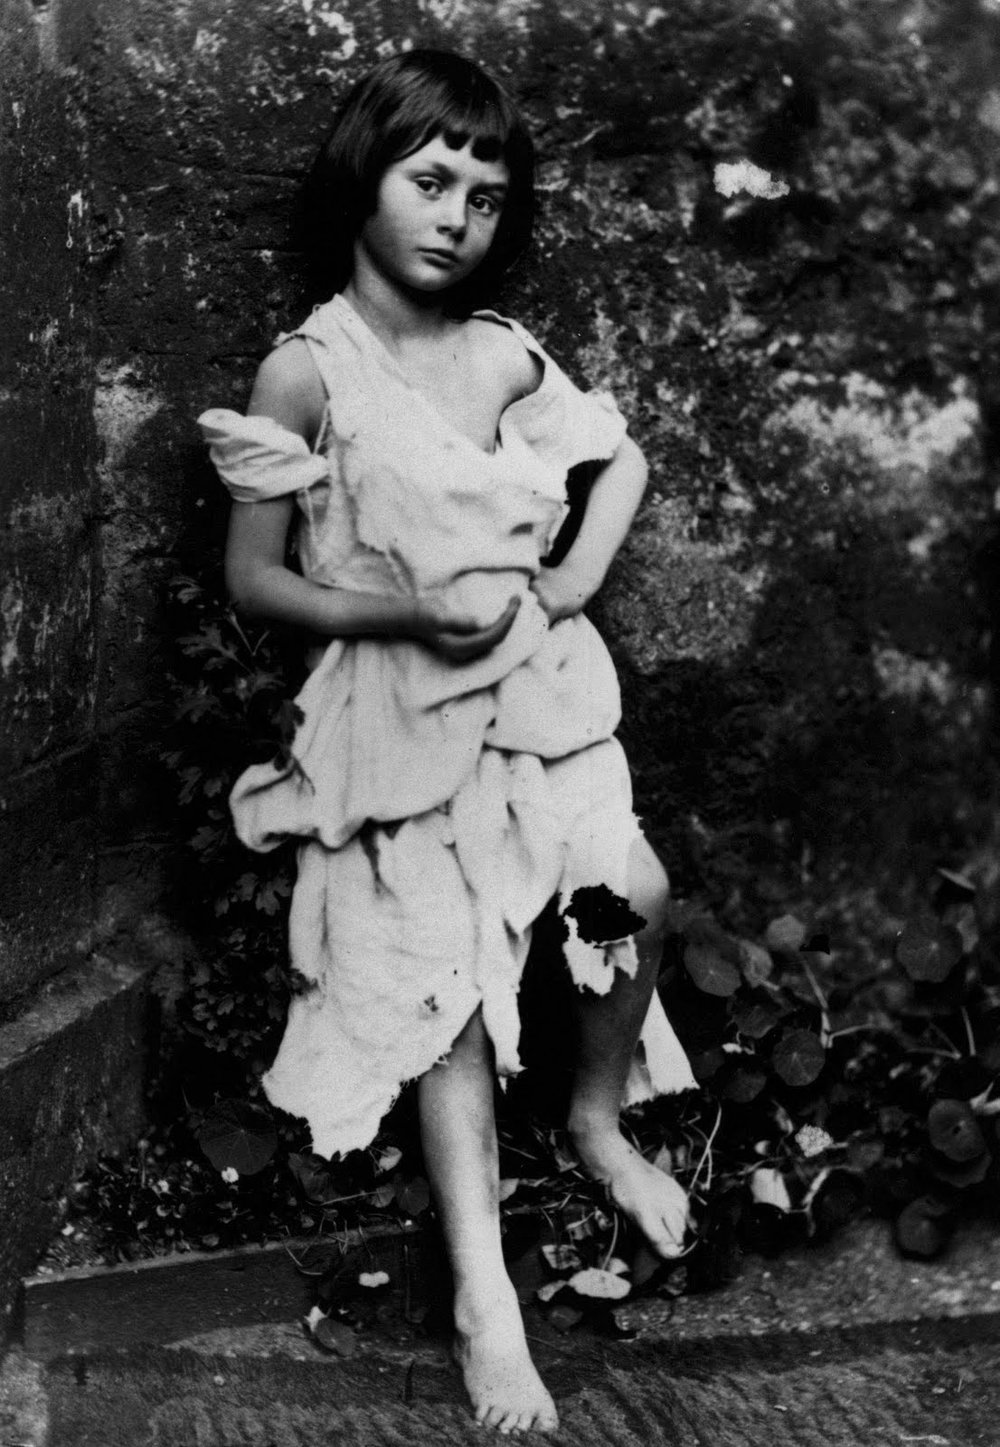 Alice Liddell, muse of Lewis Carroll